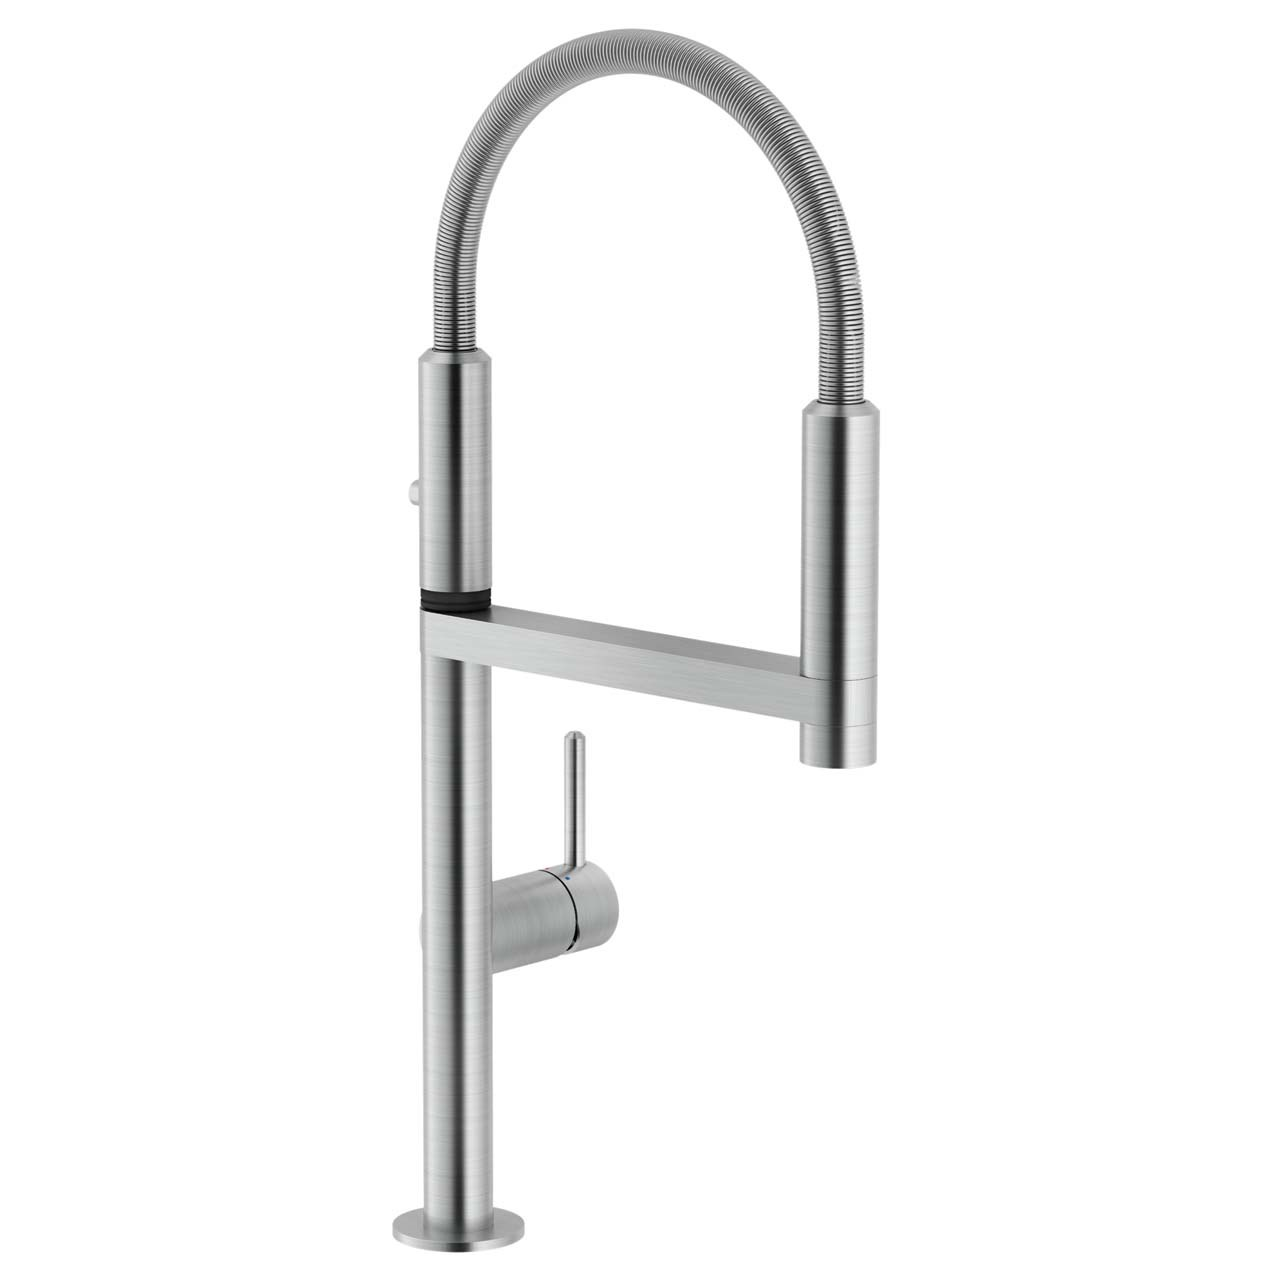 "<span style=""font-family:tahoma;"">شیر آشپزخانه نوبیلی مدلMOVE رنگ مات NOBILI MOVE Kitchen Faucets</span>"